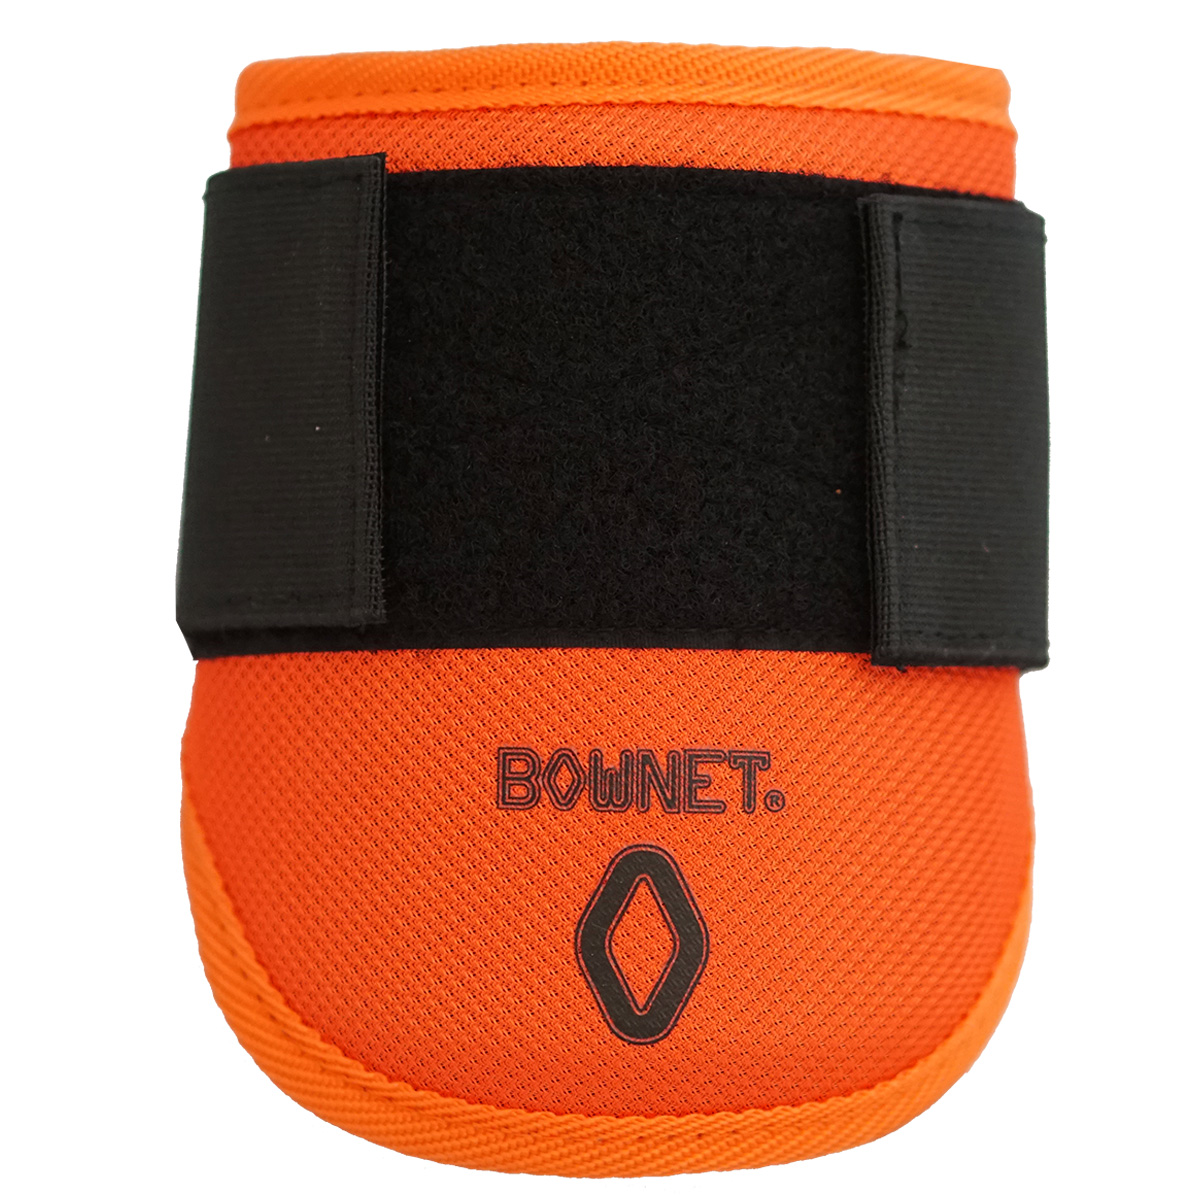 Bownet Adult Elbow Guard, Orange